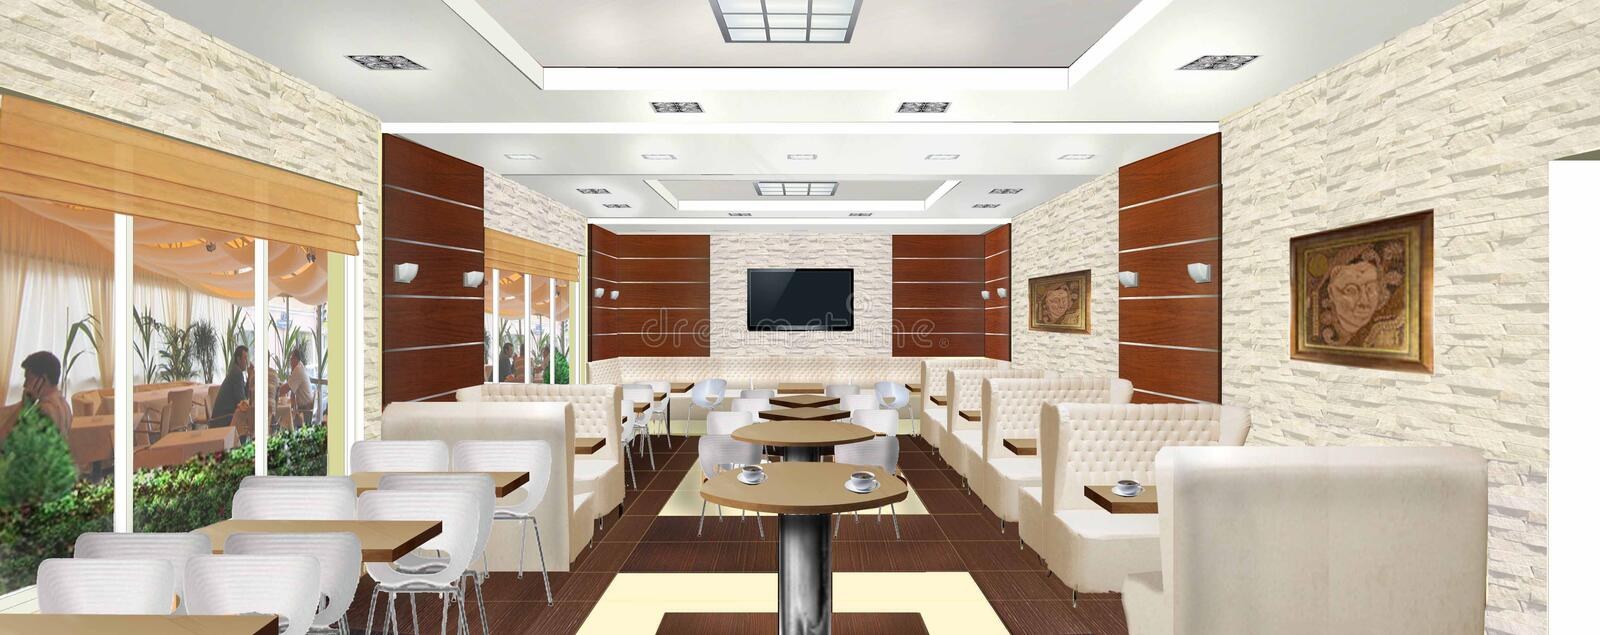 Interior Design Project Furniture Styles ~ Interior design of a cafe or restaurant stock